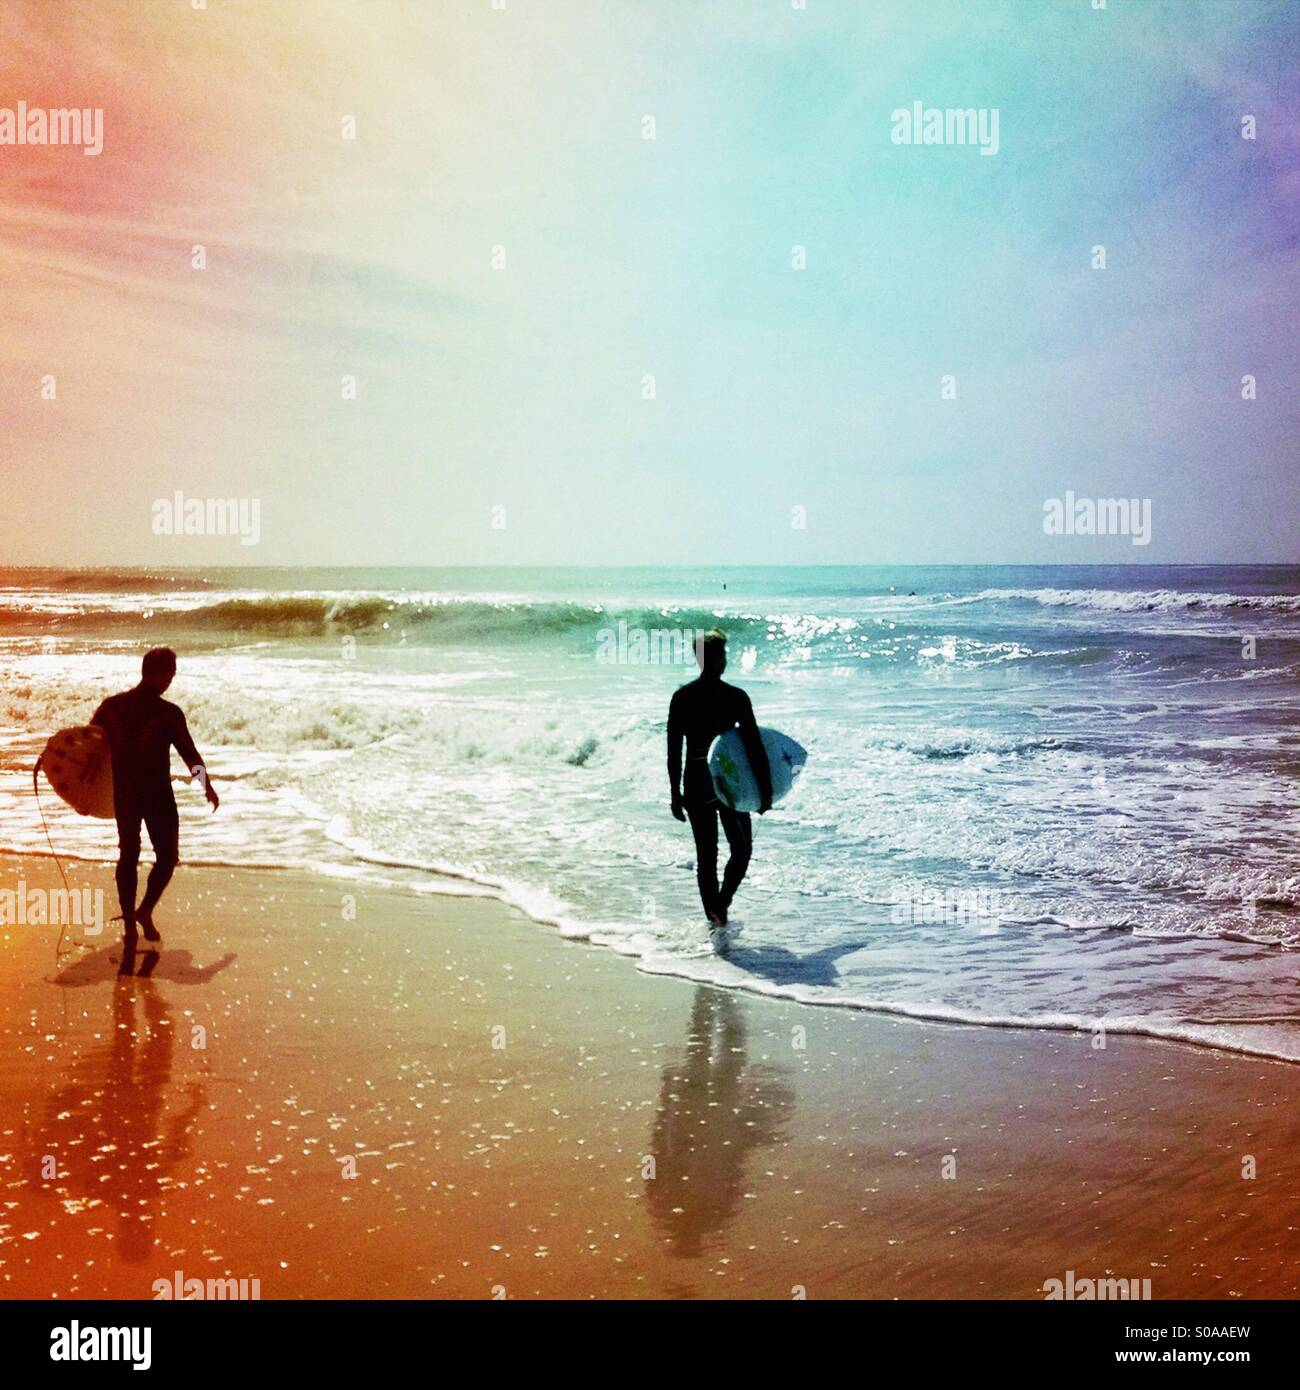 Two surfers. - Stock Image